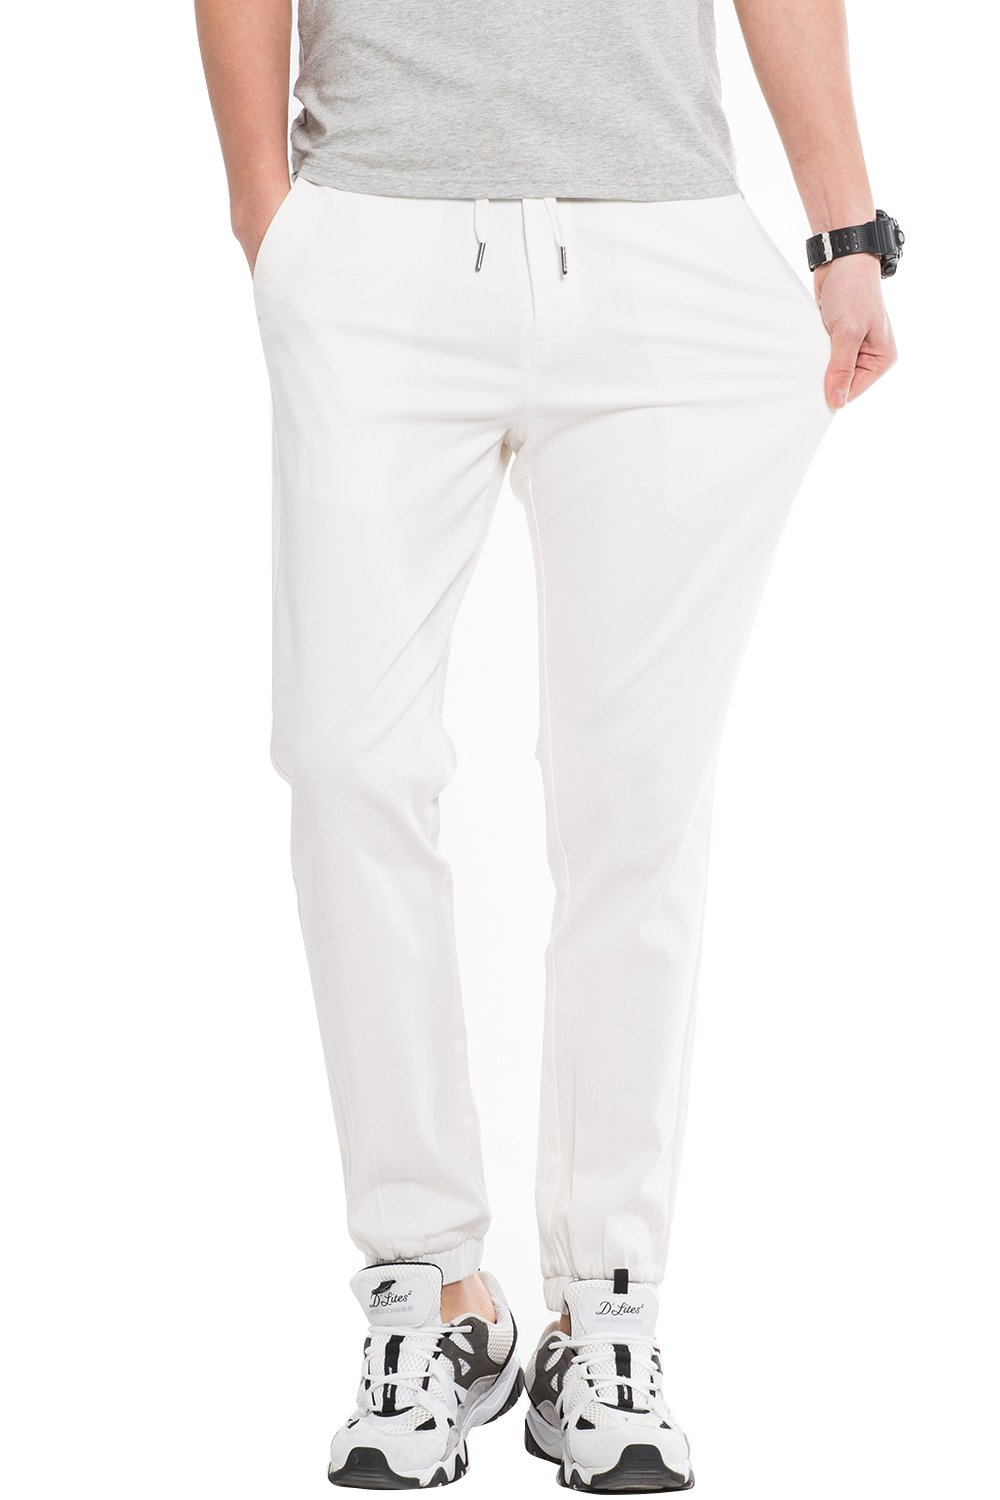 INFLATION Men's Stretchy Casual Jogger Pants  Blend Combed Cotton Formal Elastic Waist Trousers Dress Pants White US SIZE L by INFLATION (Image #4)